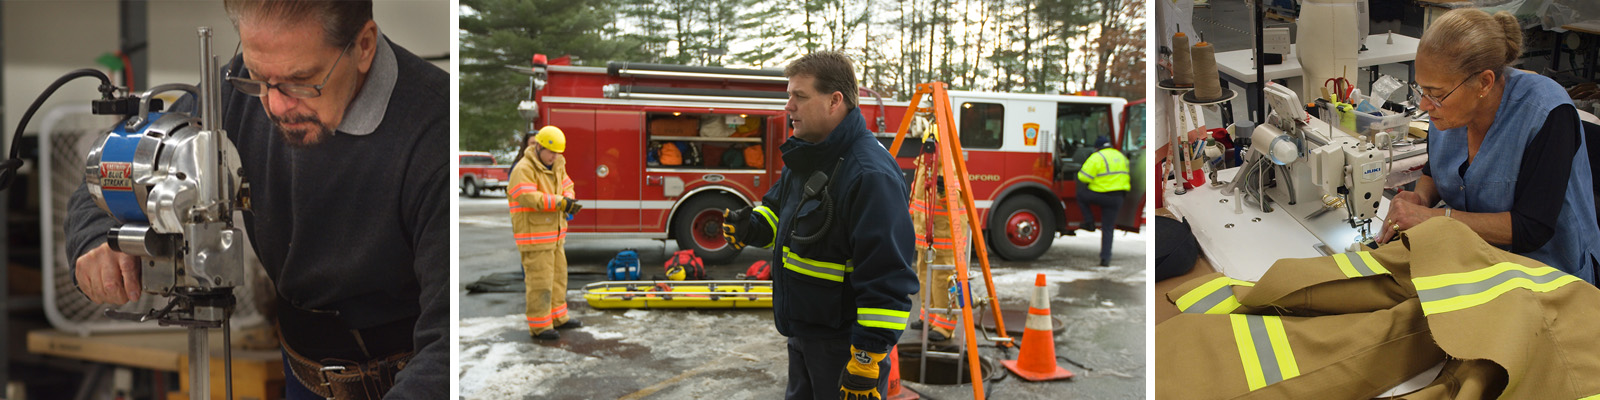 About Ricochet - PPE Manufacturer in Philadelphia, Pennsylvania